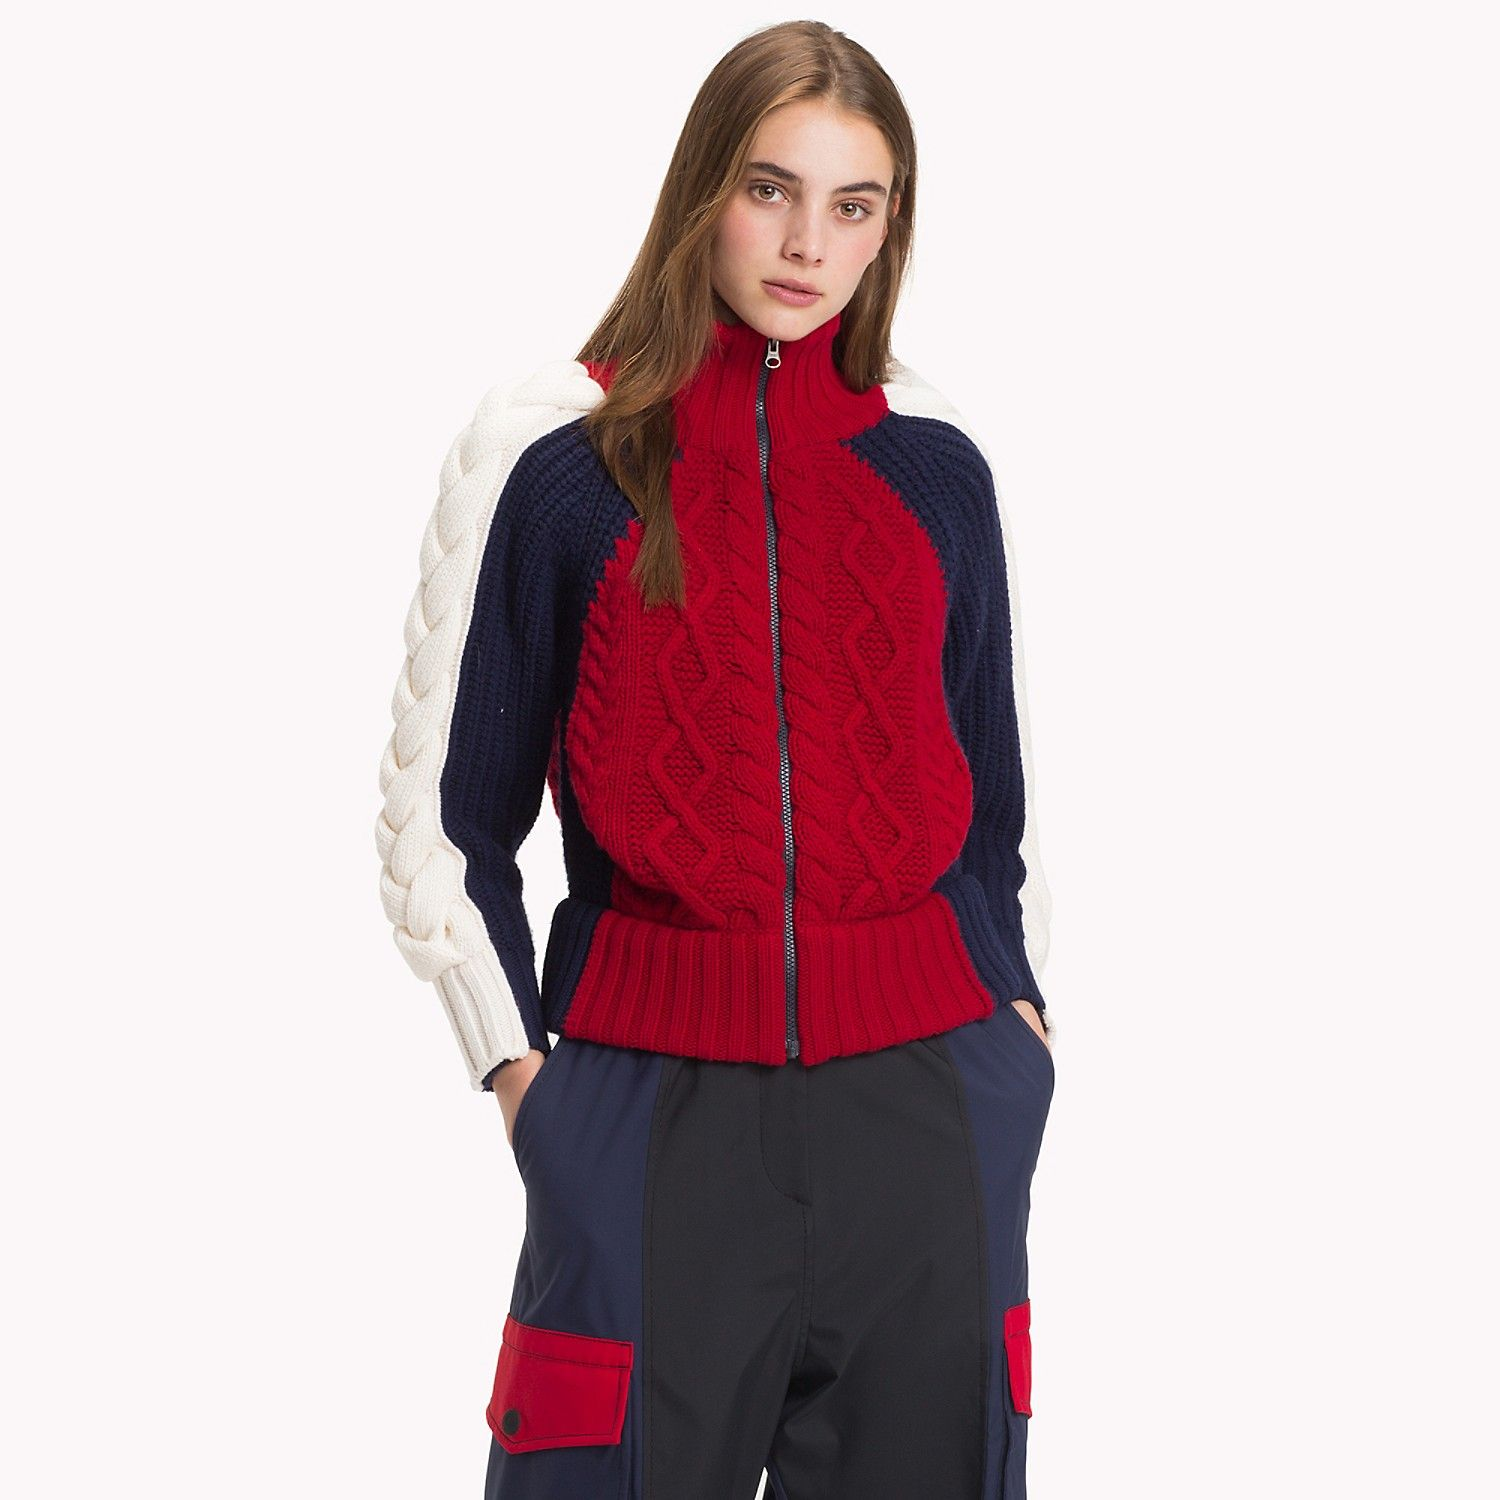 High Neck Zip Sweater Tommy Hilfiger (With images) Zip